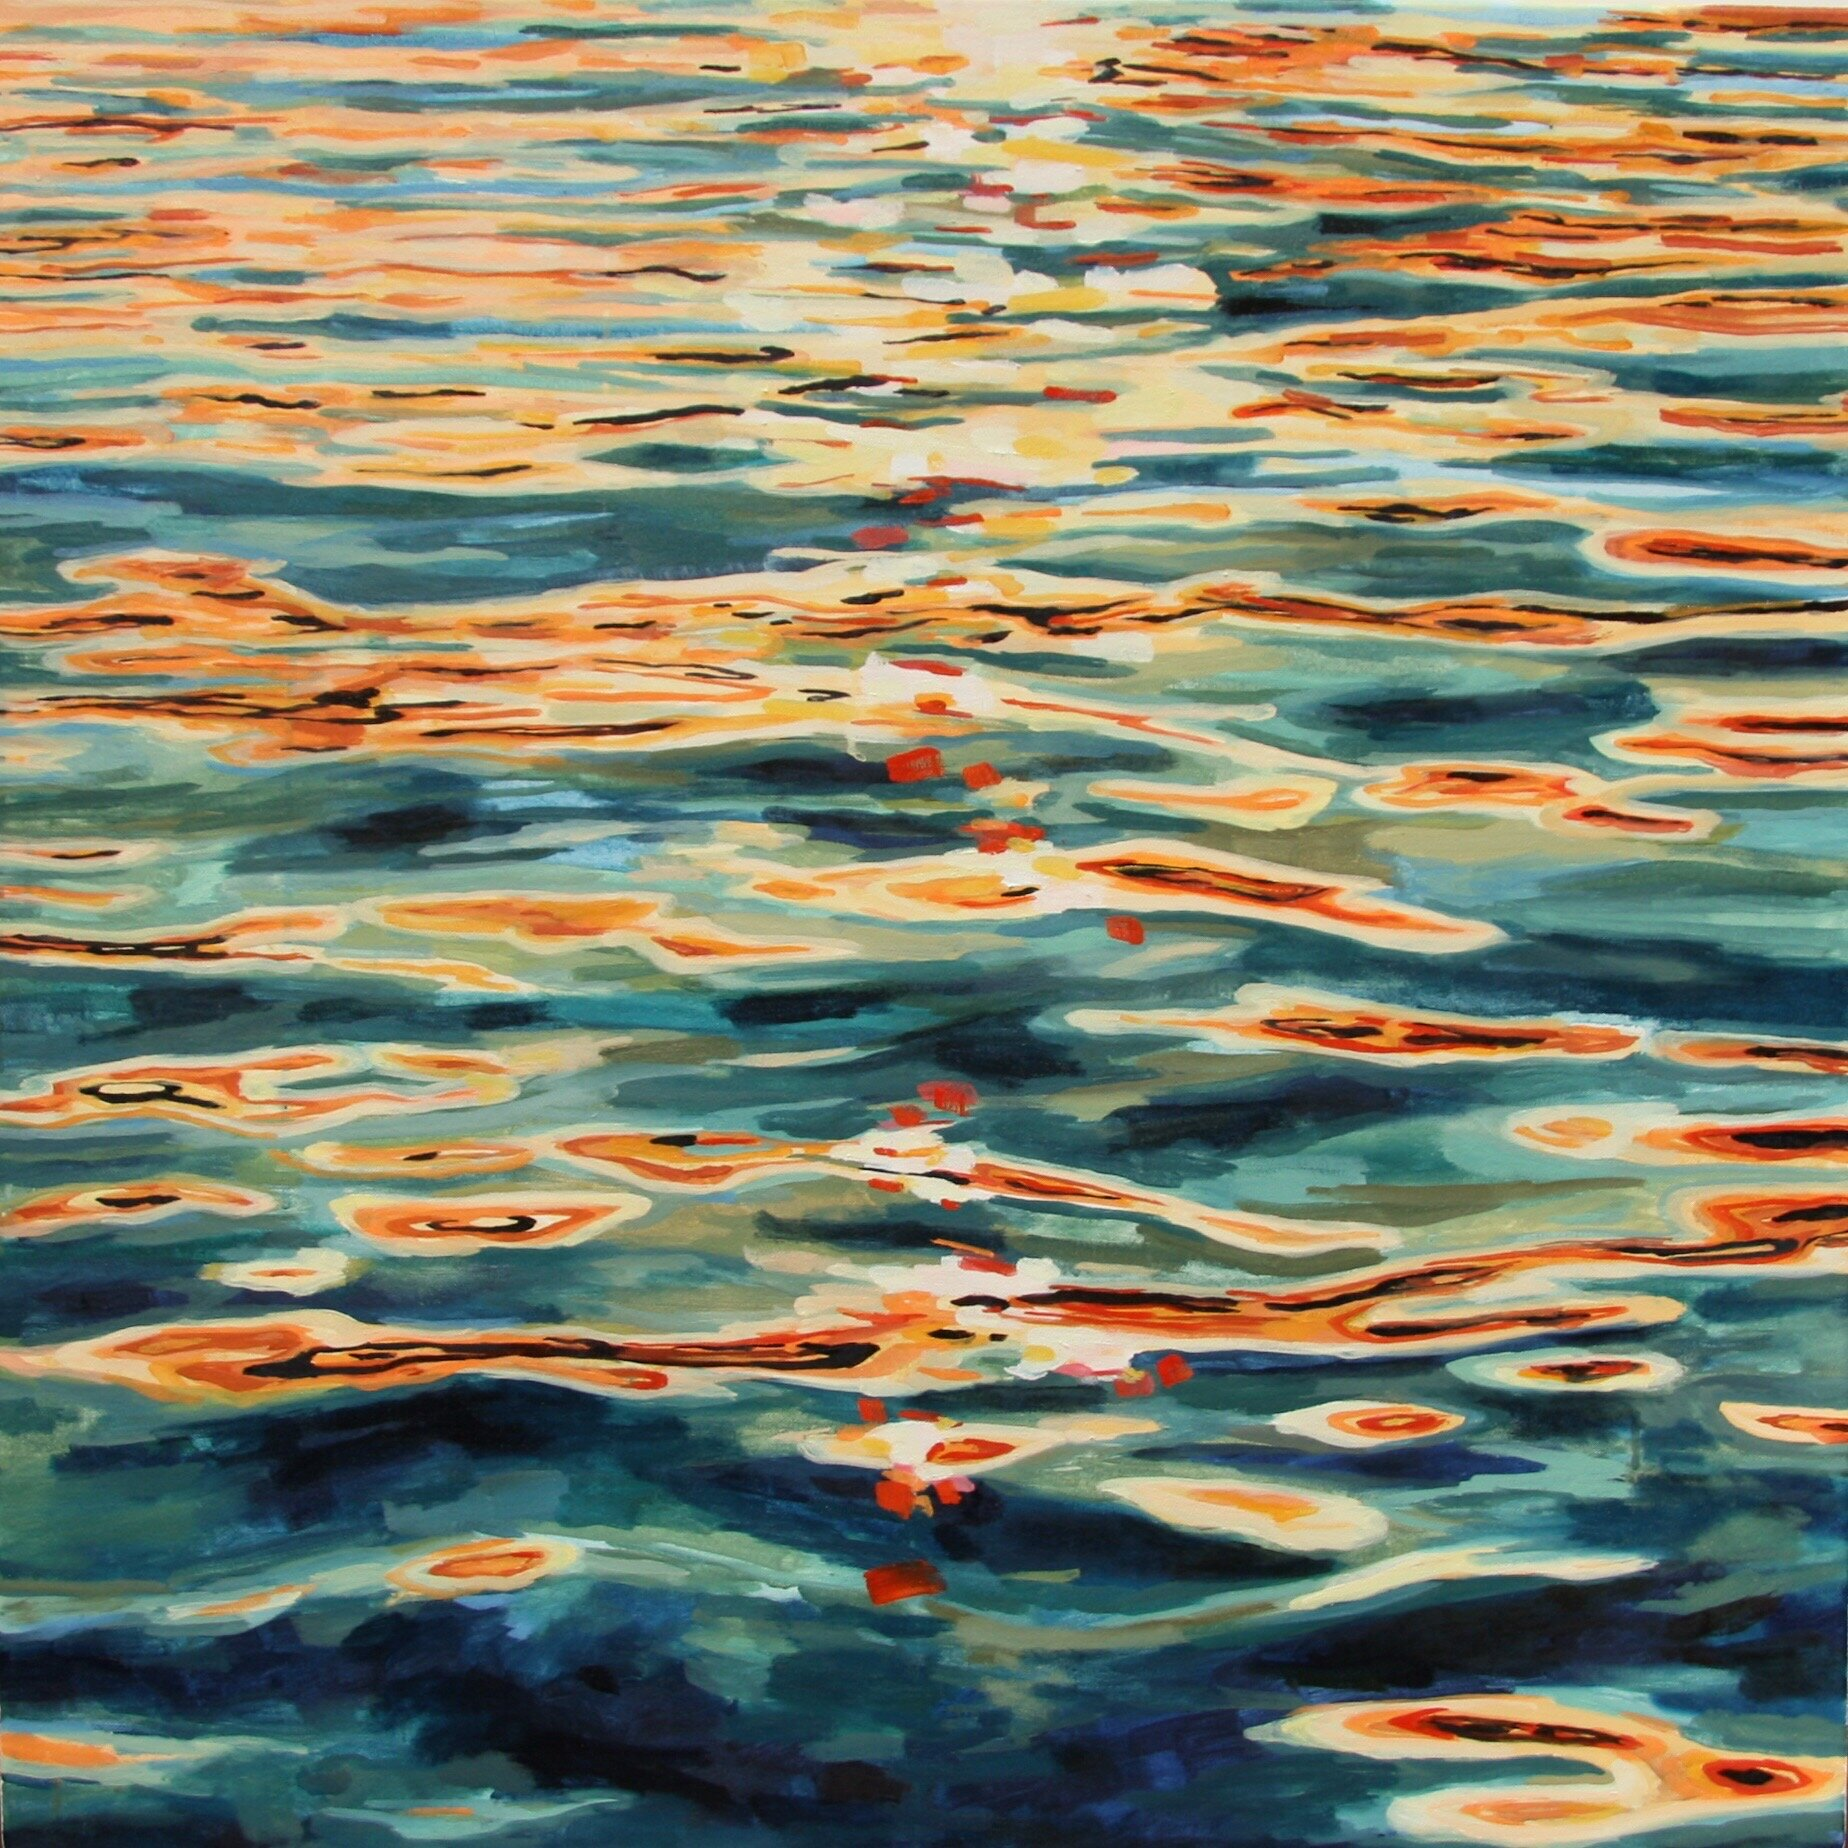 """'Gleam'  2015  36"""" x 36""""  water soluble oil on canvas  sold"""